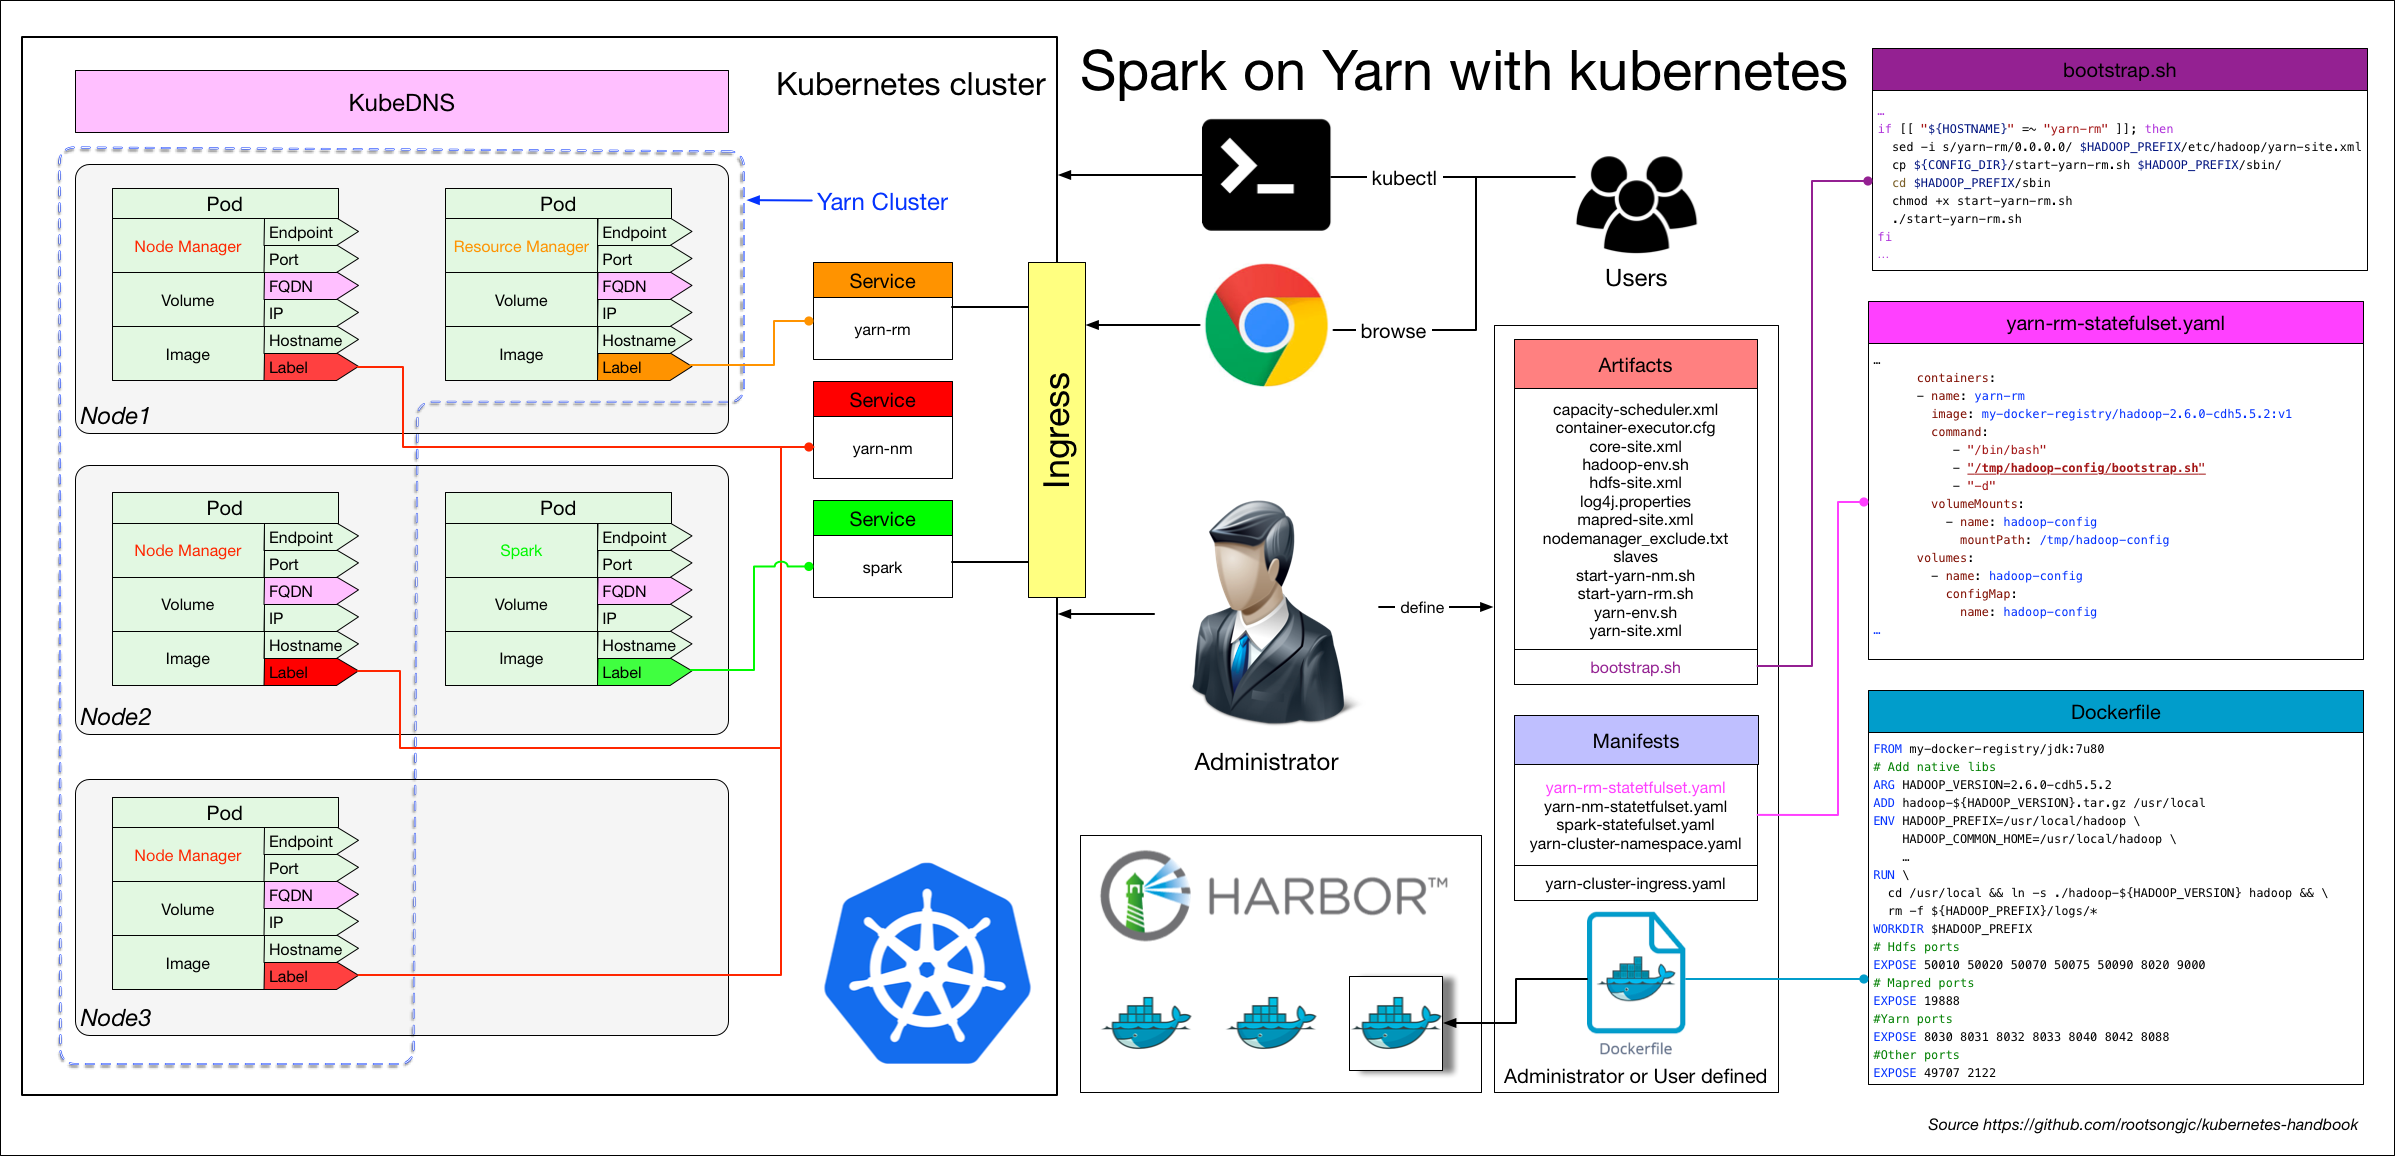 spark on yarn with kubernetes